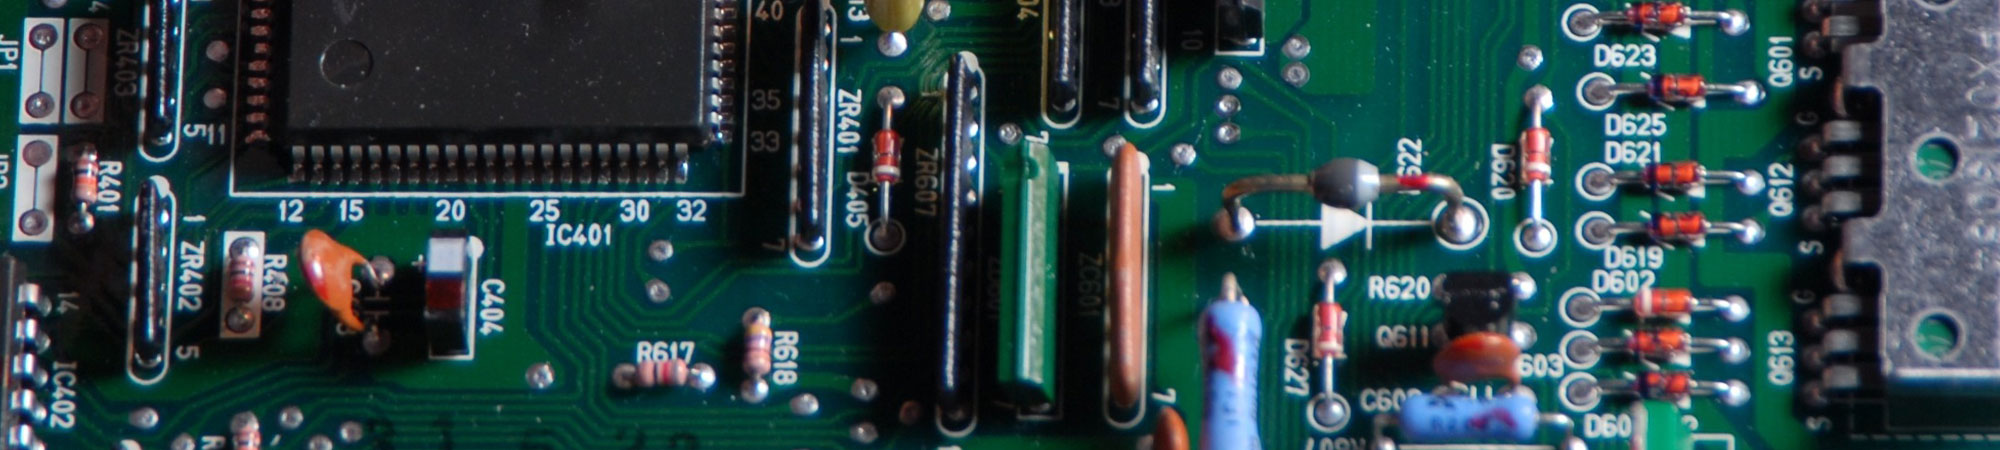 Lps Circuit Boards Pcb Assembly Rs232 Smt Boca Raton Fl Board Dip Electronic Services